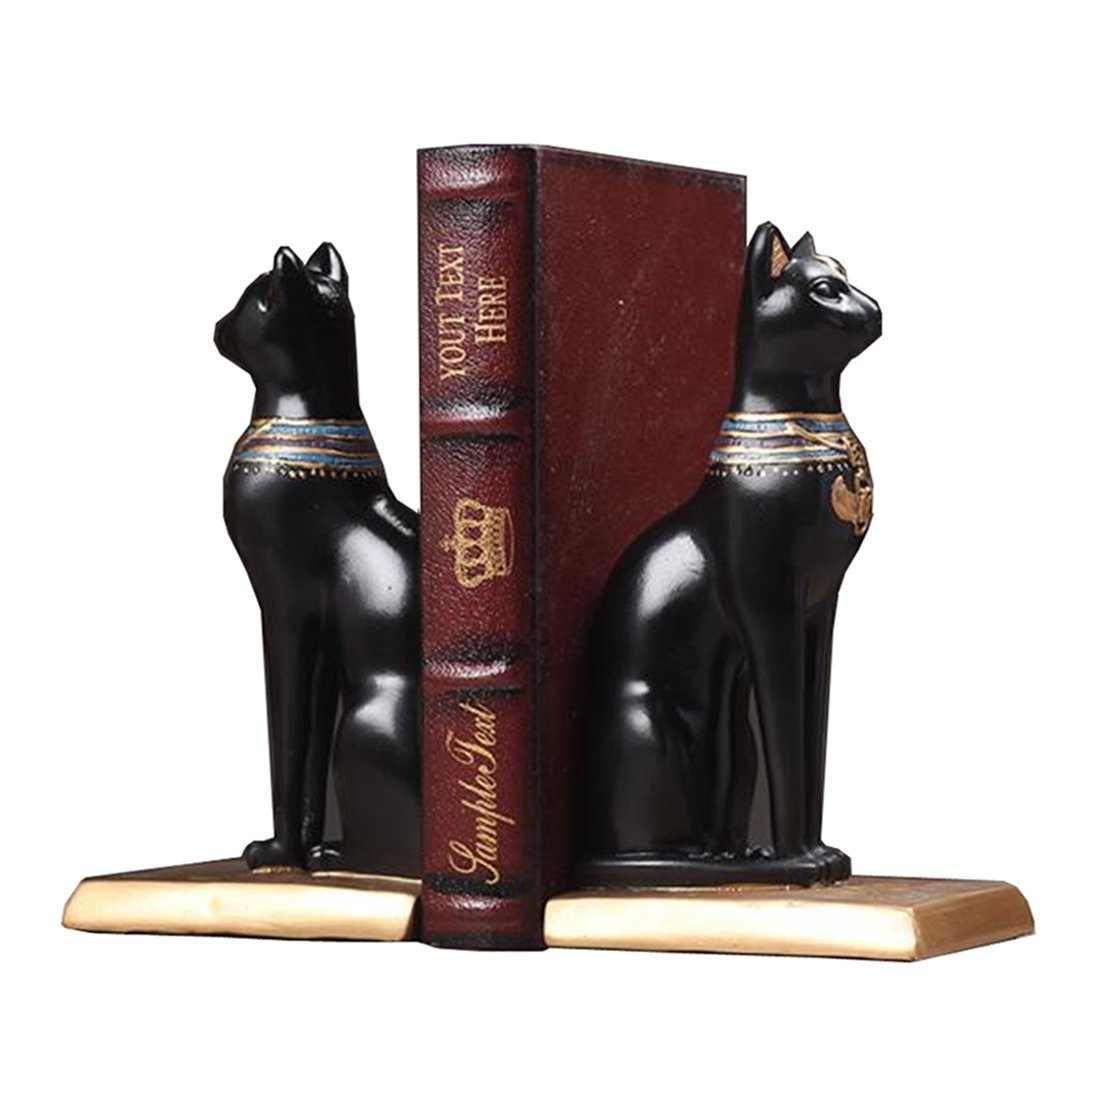 C & S Bookends Decorative, Ancient Egyptian Bastet Cat Goddess Book Ends Home Office Library School, Statue Resin Black, 1 Pair